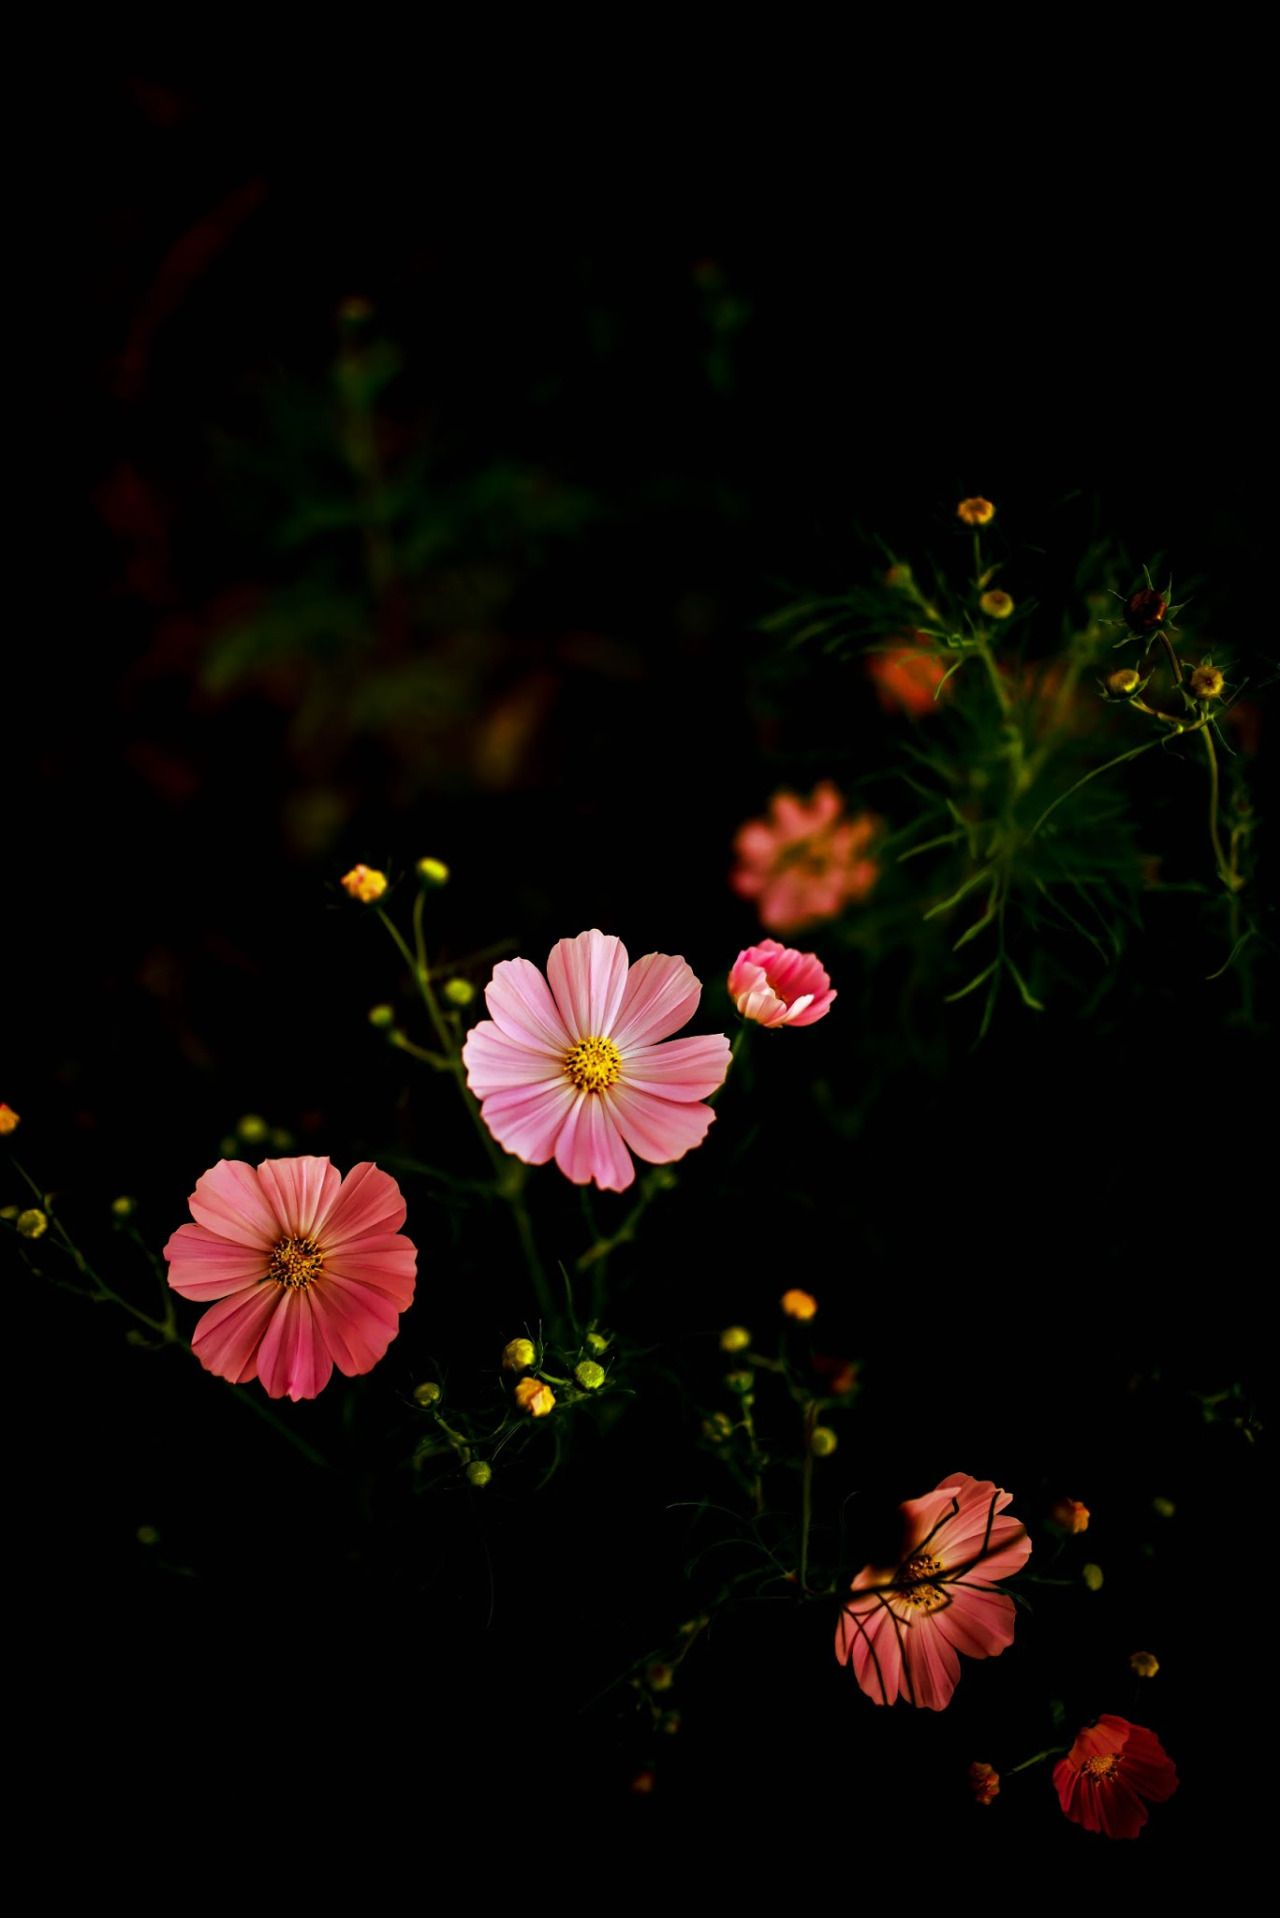 Grace Ful Things Flowers Photography Wallpaper Photography Wallpaper Beautiful Flowers Wallpapers